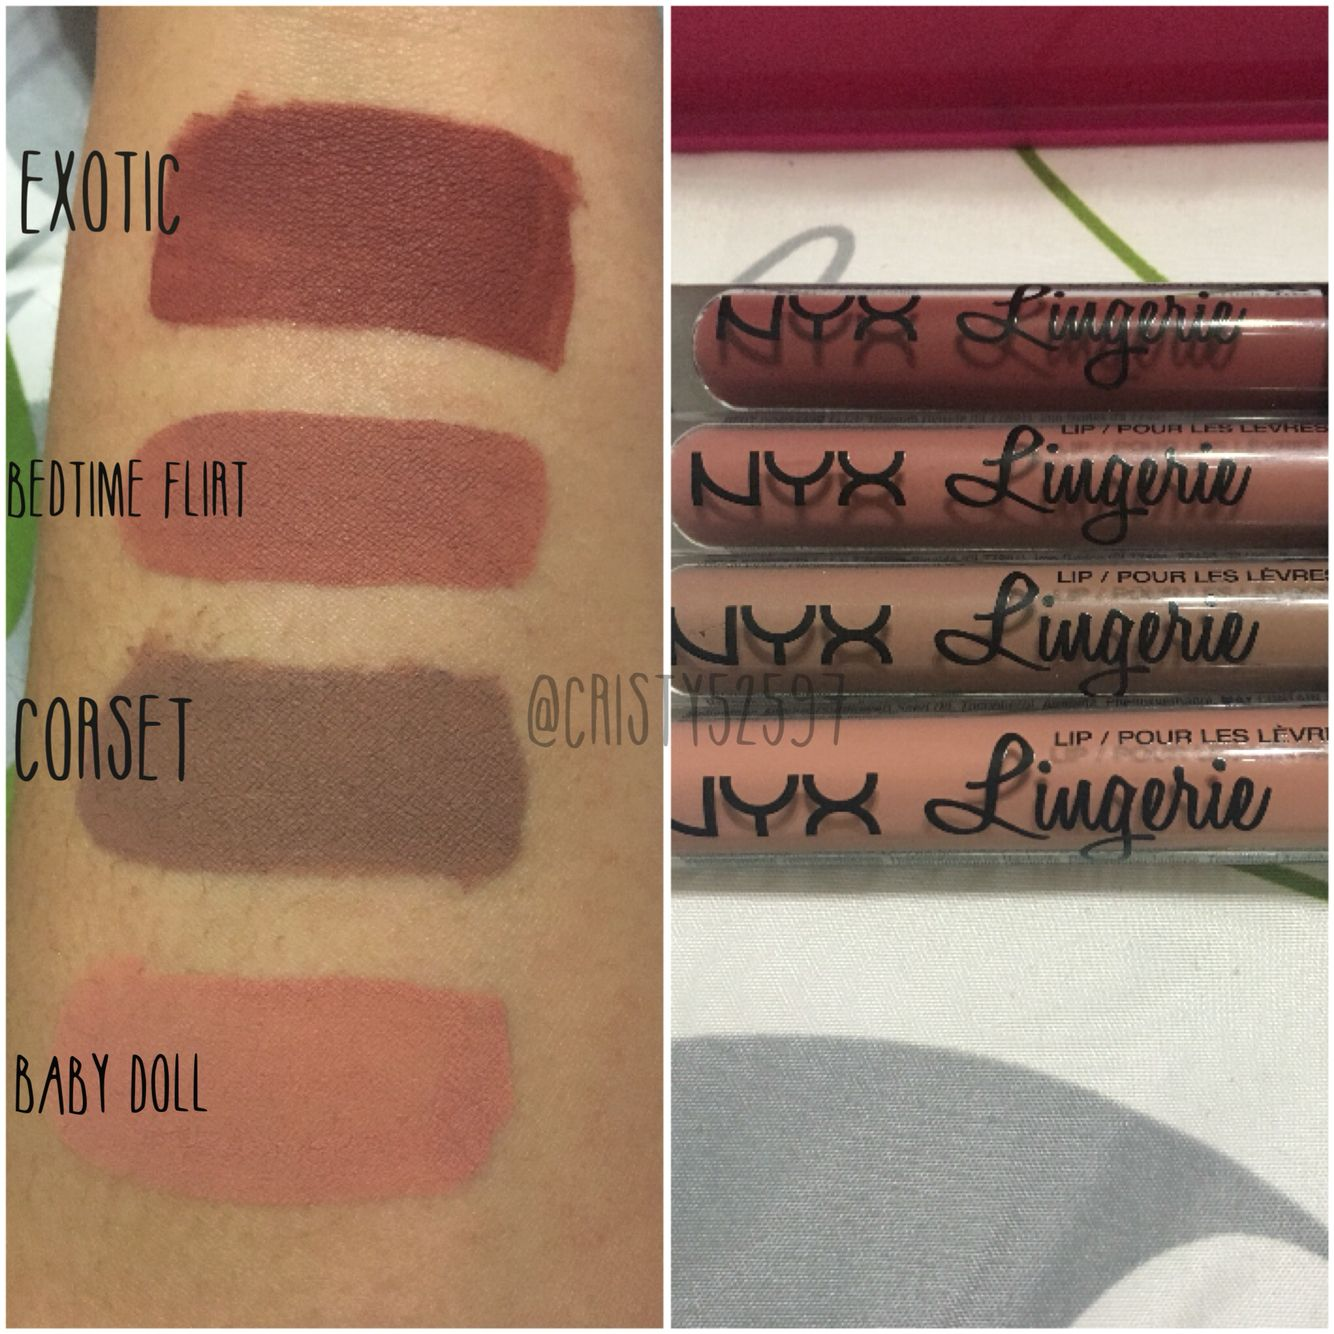 b56650adf19e2 NYX Lingerie Liquid Lipstick Swatches on Medium Skin Tone. Colors : Exotic  , Bedtime Flirt, Corset and Baby Doll. They are nude shades and dry matte.